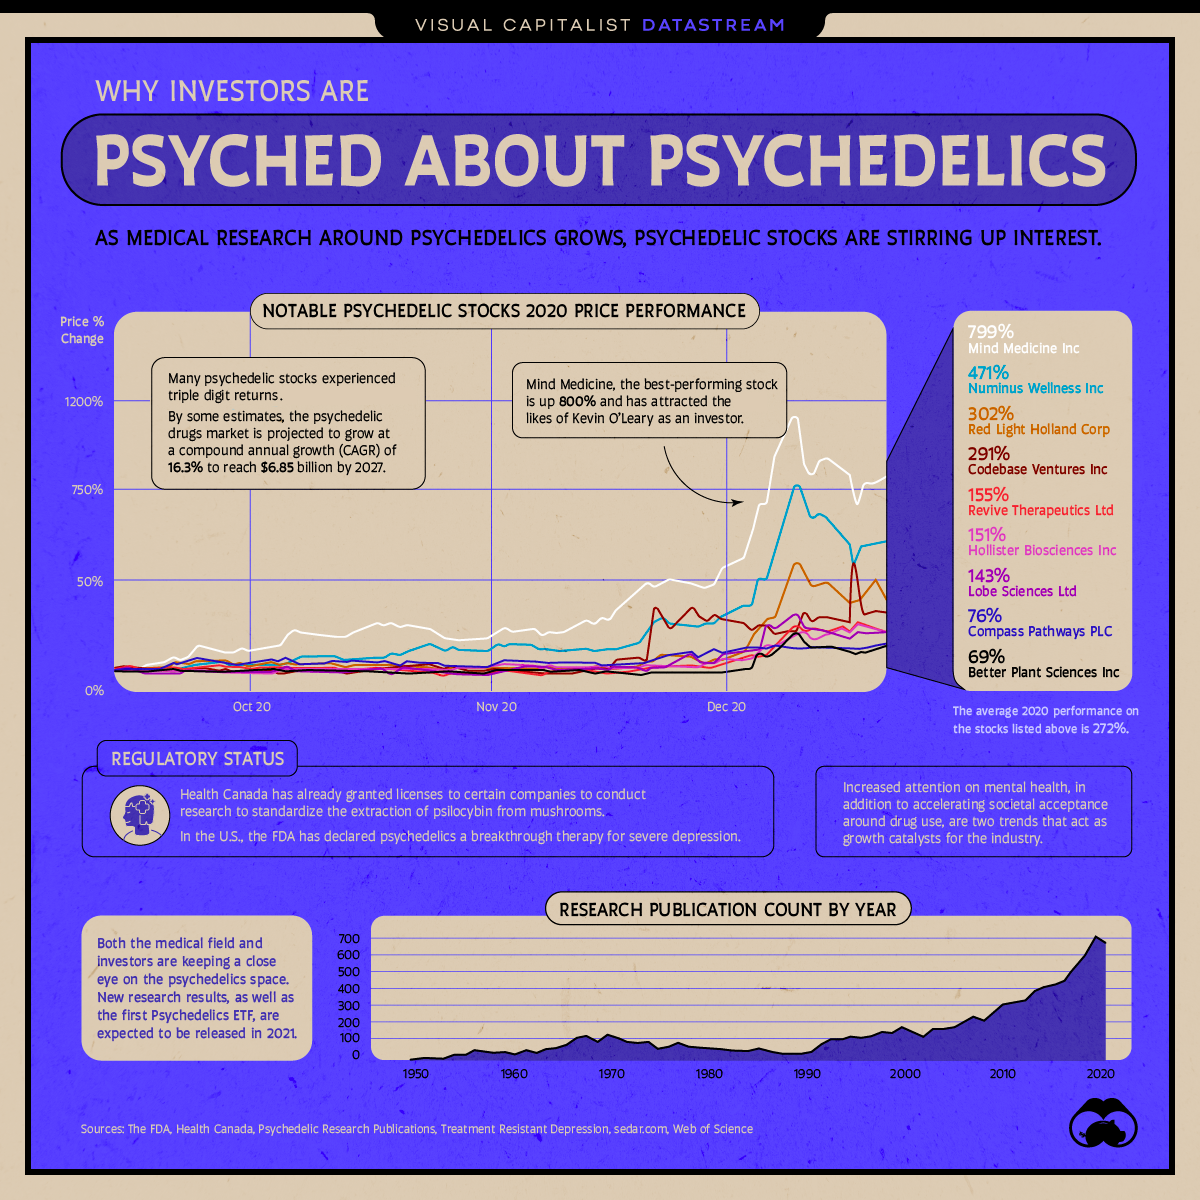 Why Investors are Psyched about Psychedelics